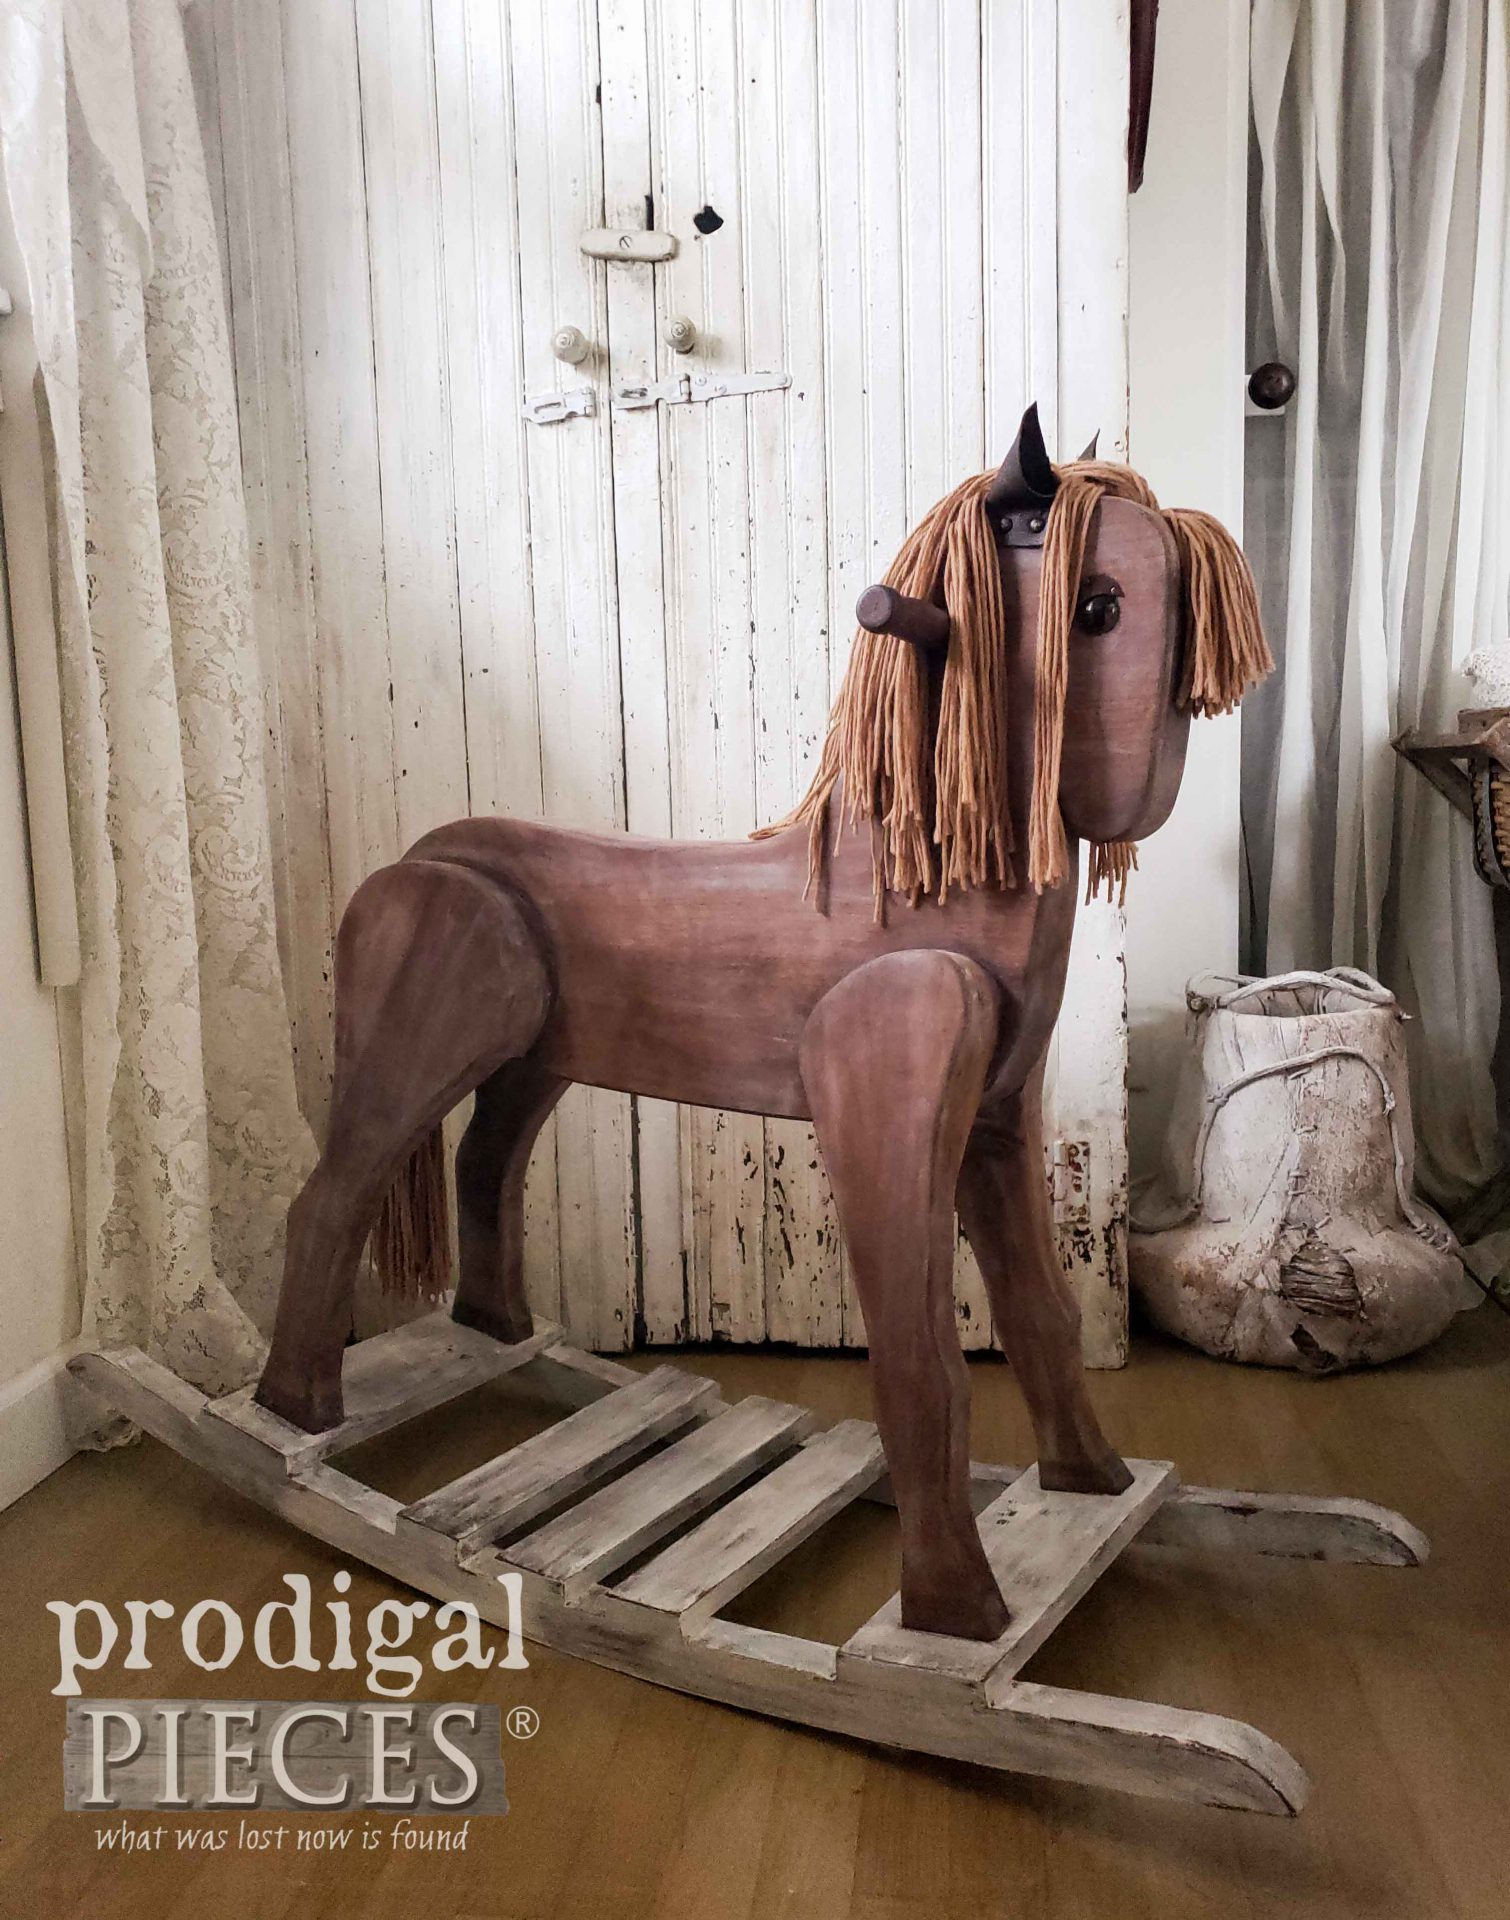 Rustic Farmhouse Rocking Horse Perfect for Kids of all Ages by Larissa of Prodigal Pieces | prodigalpieces.com #prodigalpieces #home #homedecor #farmhouse #toy #giftidea #horse